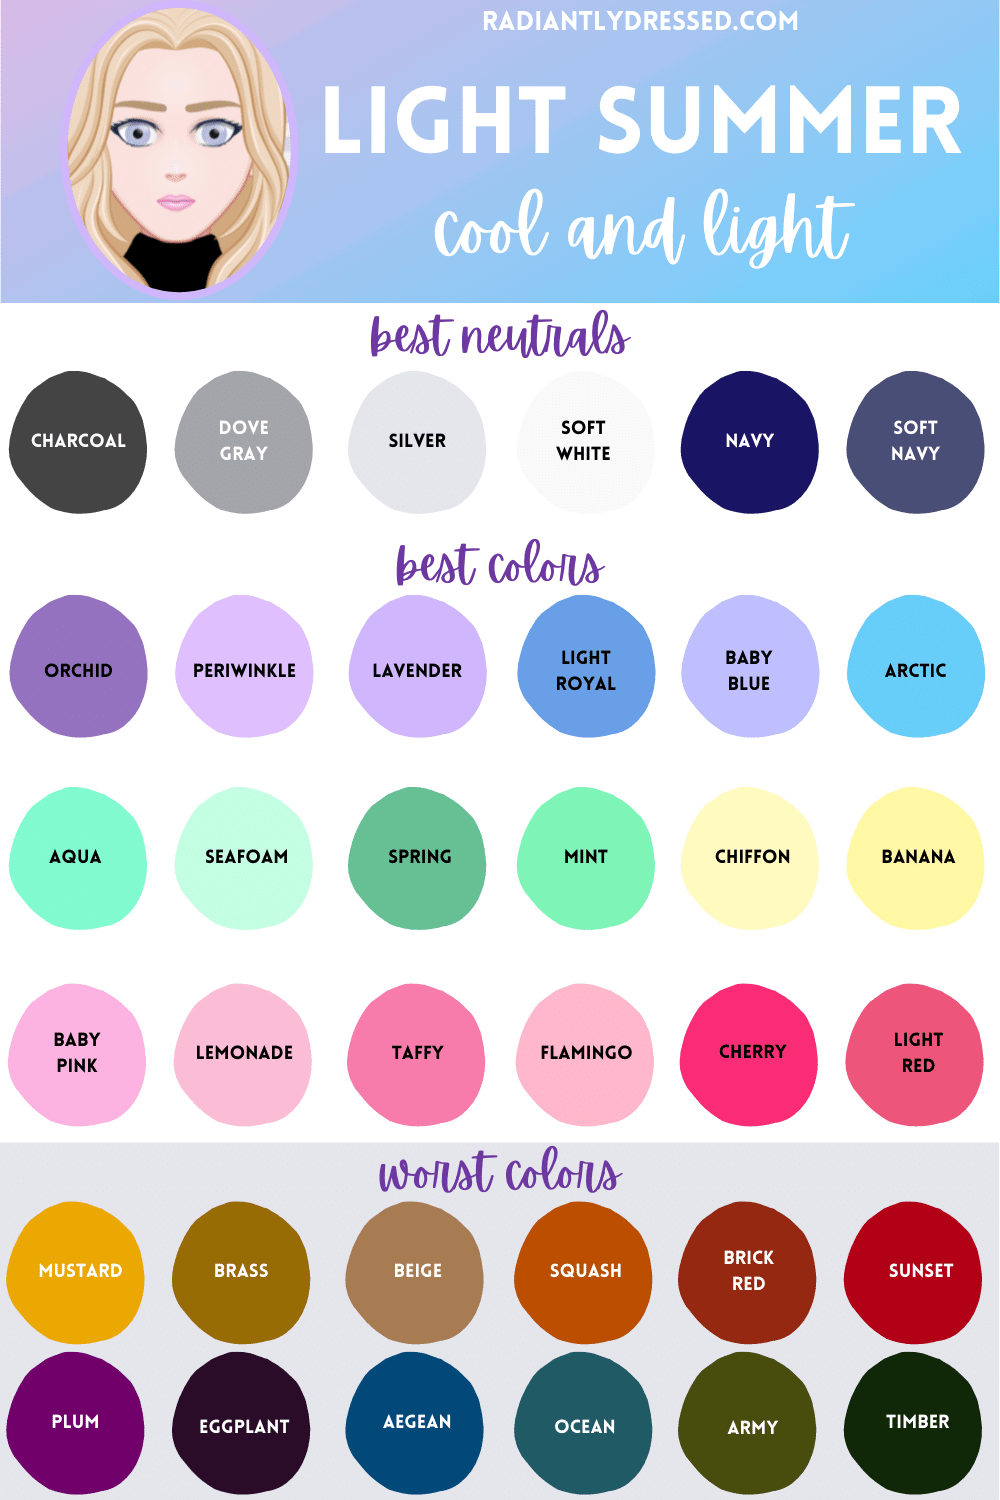 best and worst colors for light summer